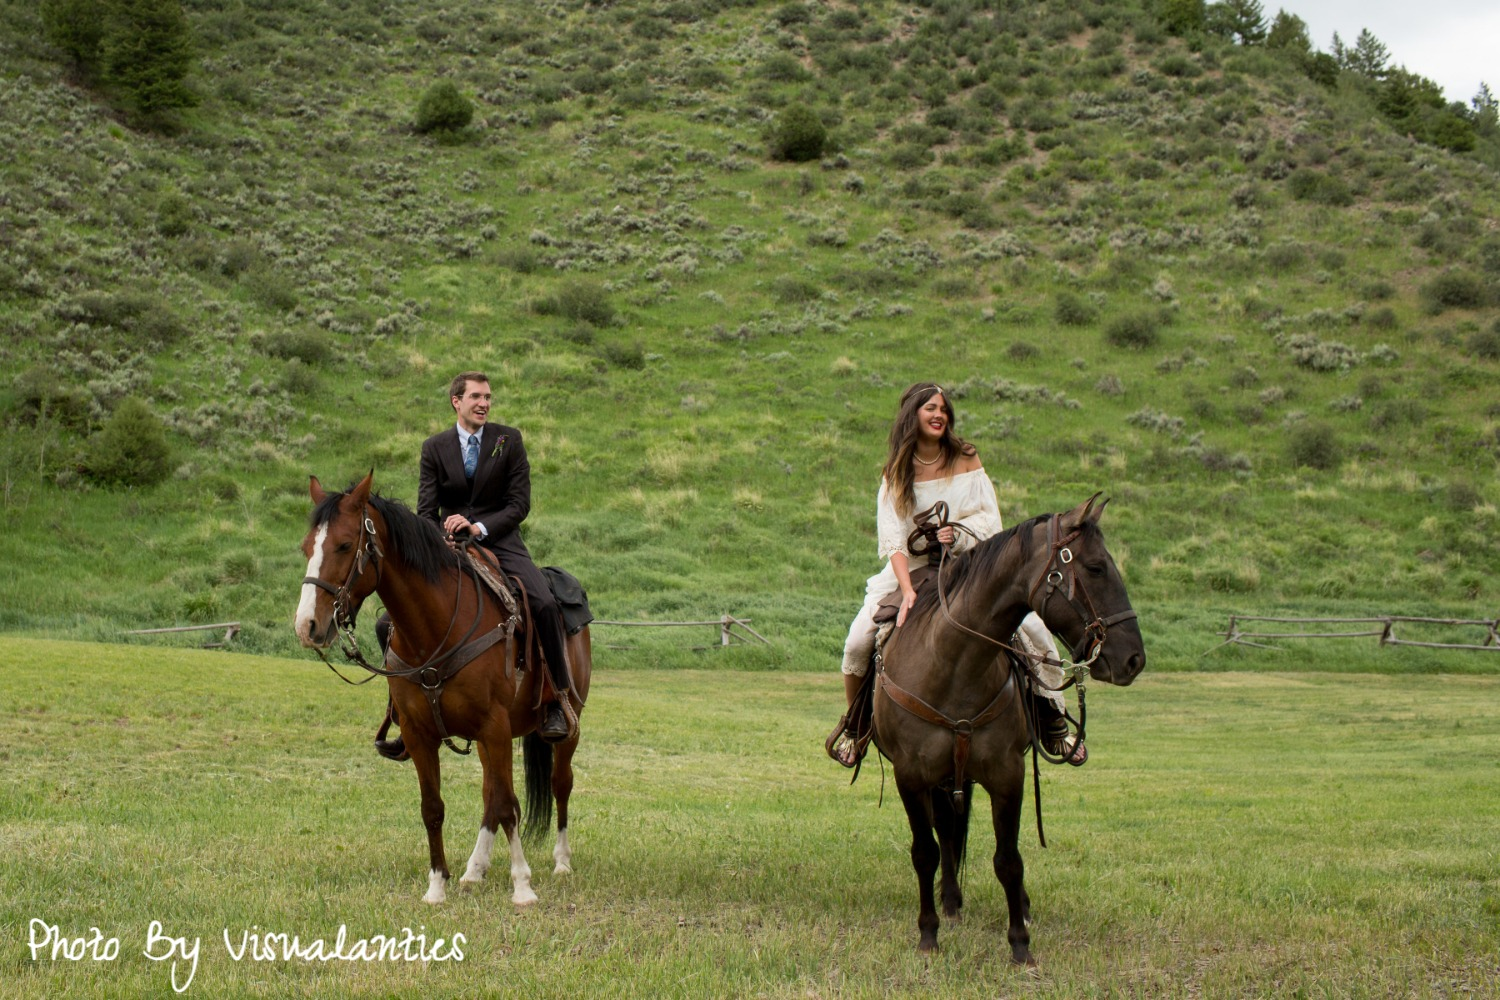 Visualanties-Vail-Wedding-Morgan-Willows-Jamer-Odney-Mountain-Photographer-299_edited